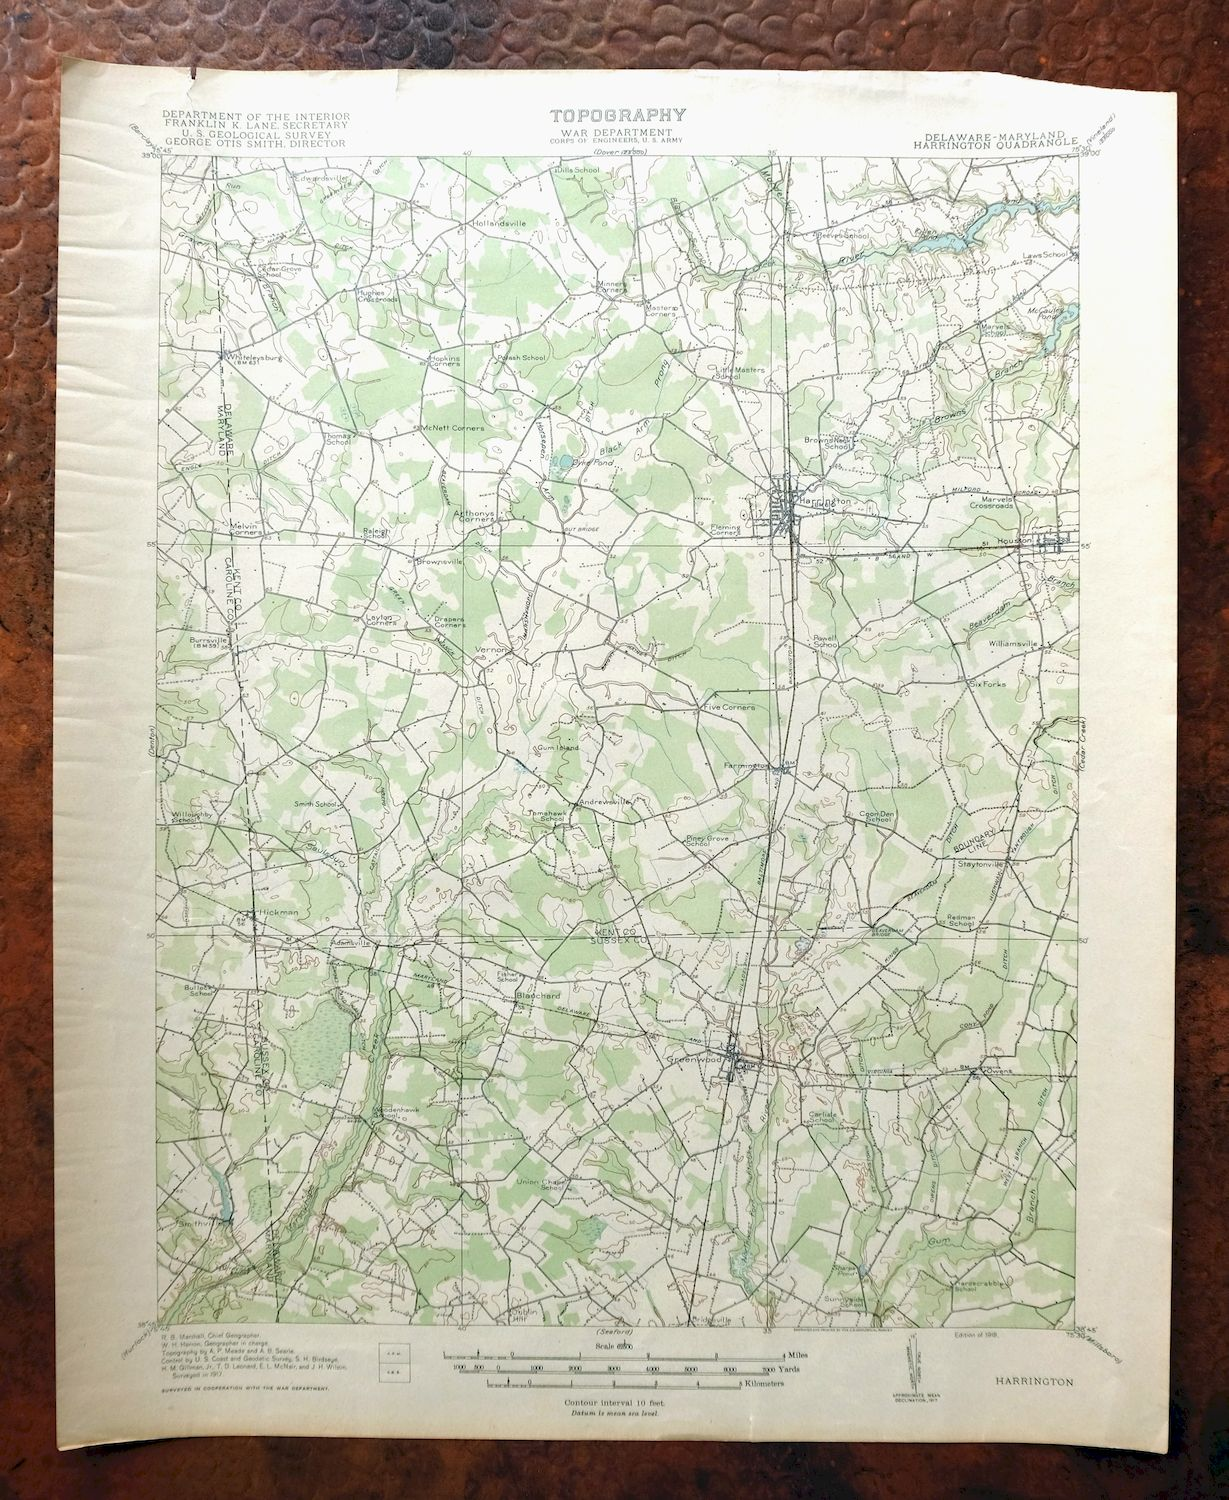 Details about 1918 Harrington Delaware Maryland Antique USGS Topographic  Map Greenwood Topo